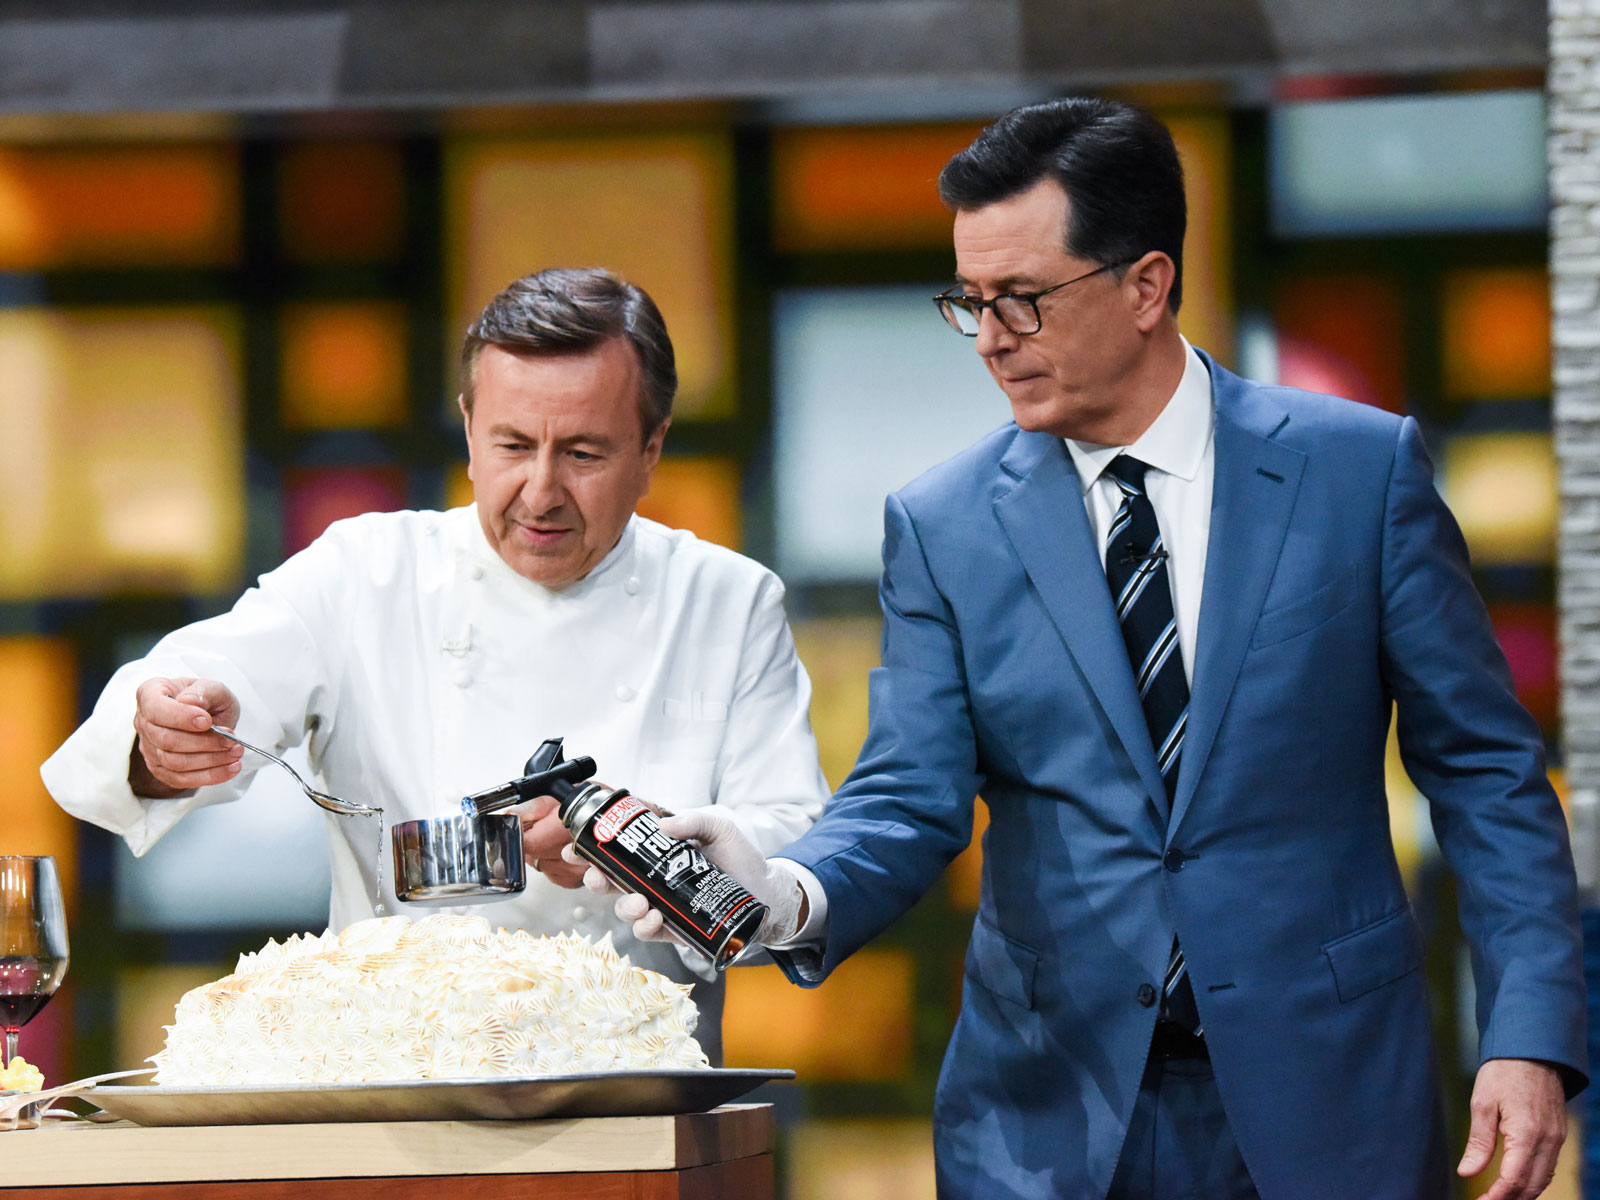 Daniel Boulud Celebrates 25 Years of 'Daniel' by Cooking Vol-au-Vent for Stephen Colbert